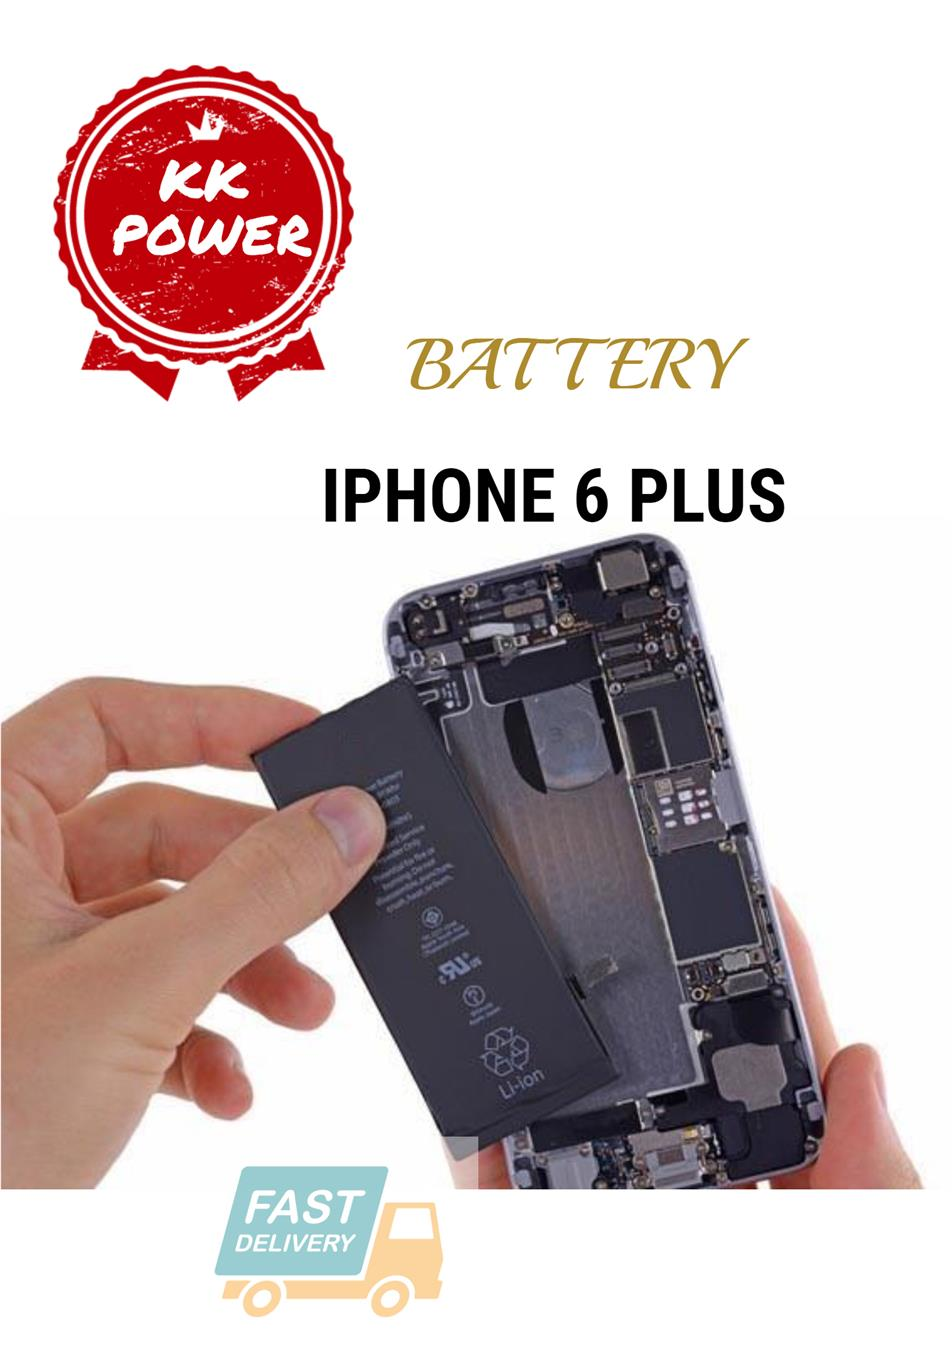 100%ORIGINAL IPHONE 4/4S/5/5S/6/6P/6S/6SP/7/7+ BATTERY@6mth warranty